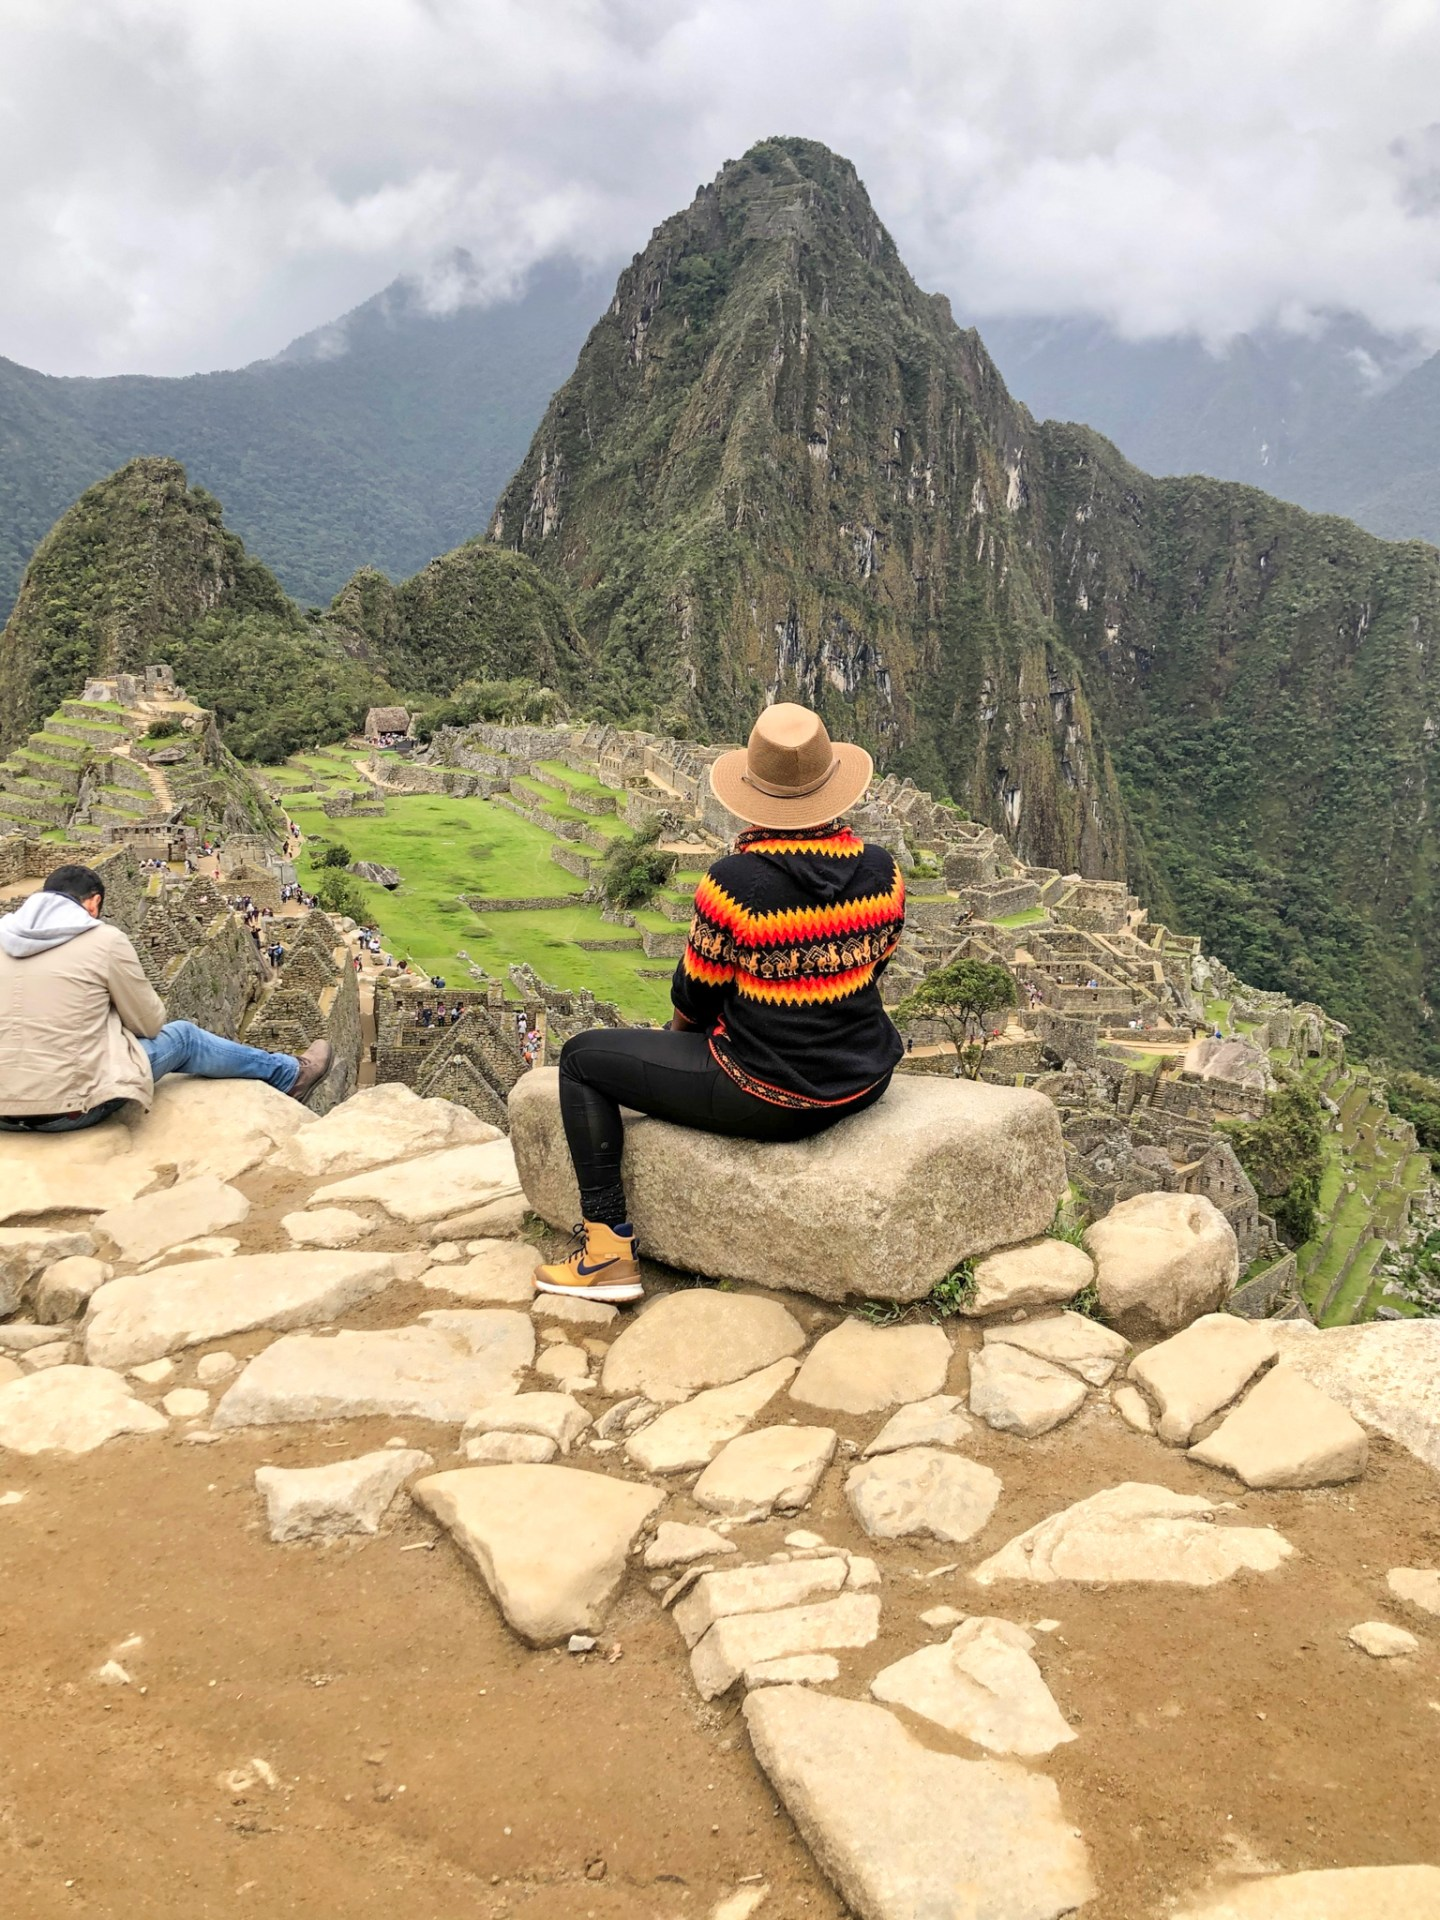 Black traveler in Machu Picchu wearing Nike hiking boots